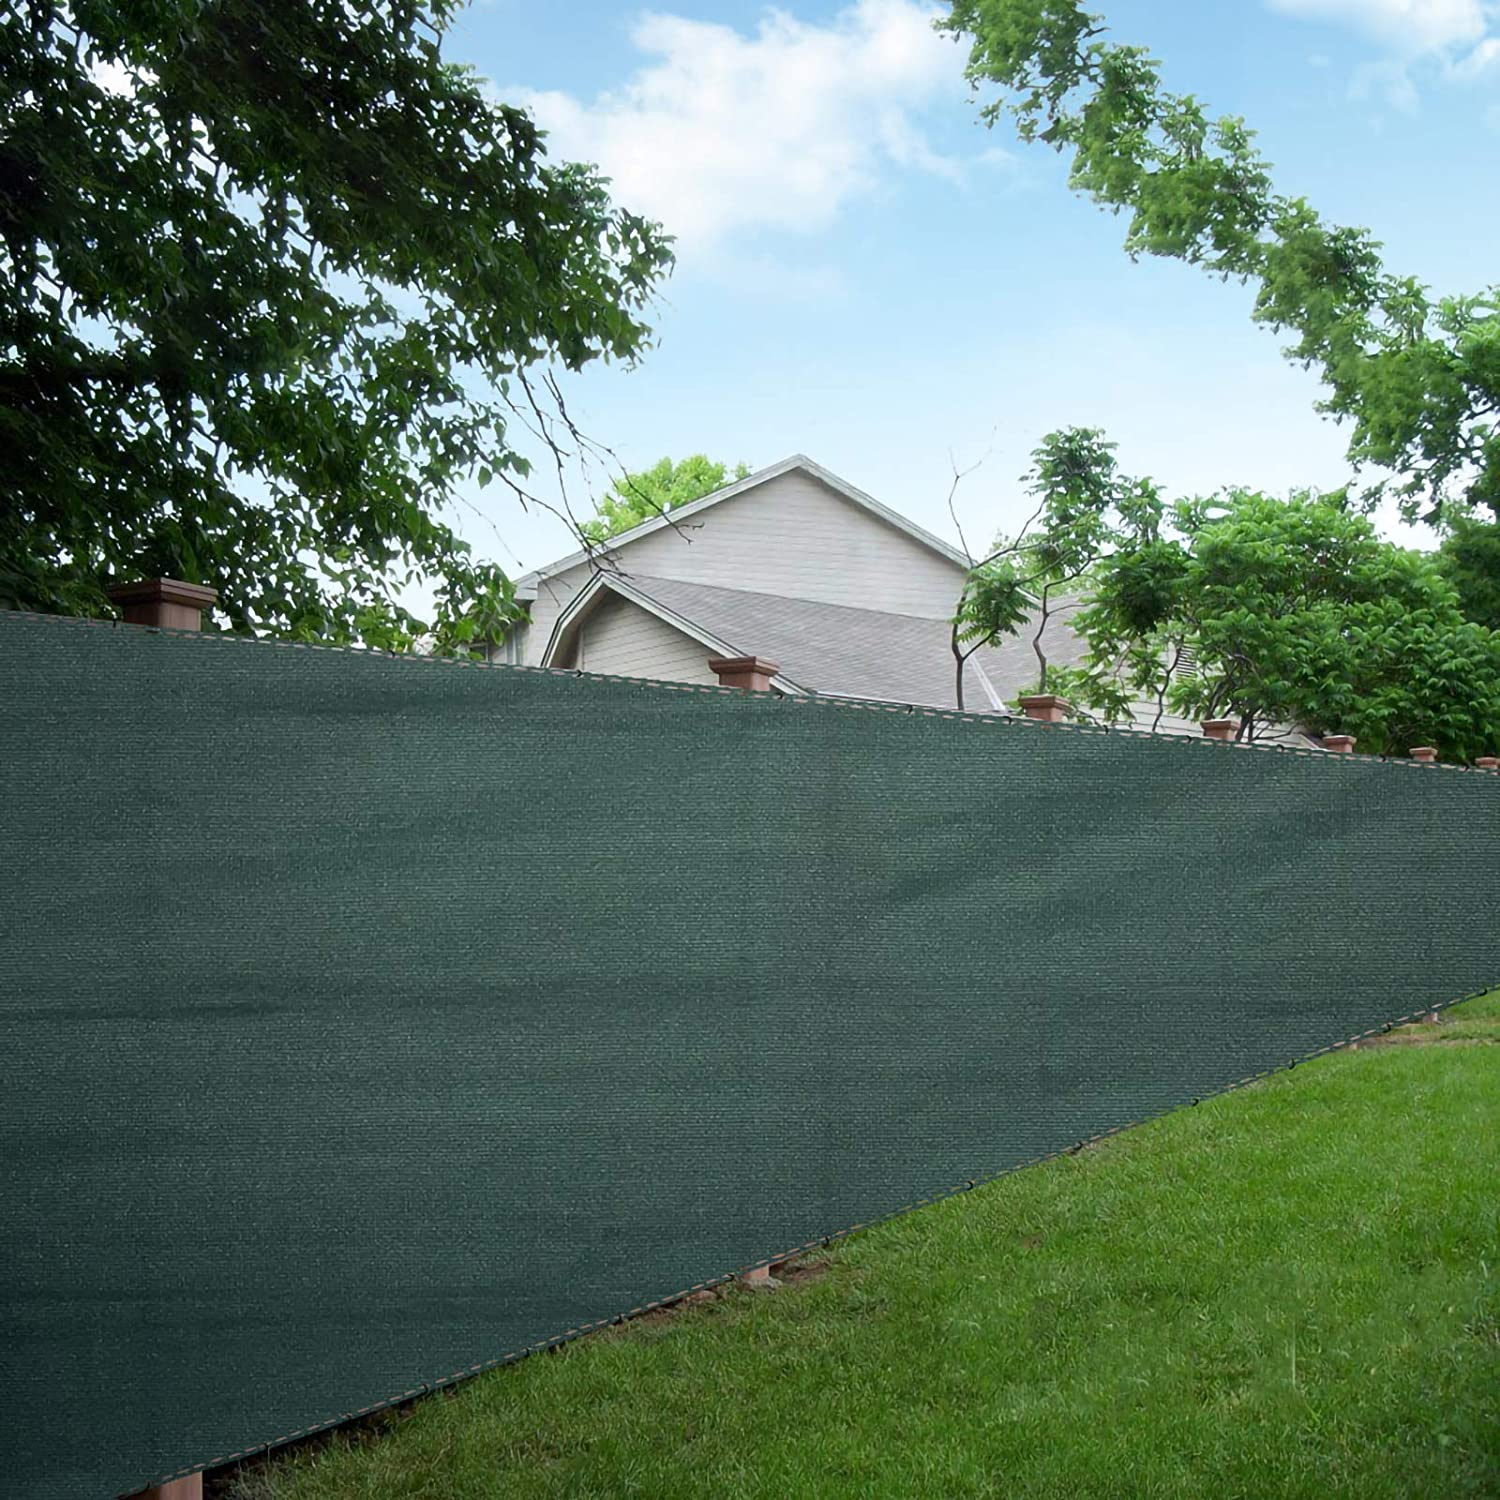 LOVE STORY 6'x8' Dark Green Shade Fabric Fence Privacy Screen Coverage for People,Pet,and Home Cover Outdoor or Exterior UV Protection